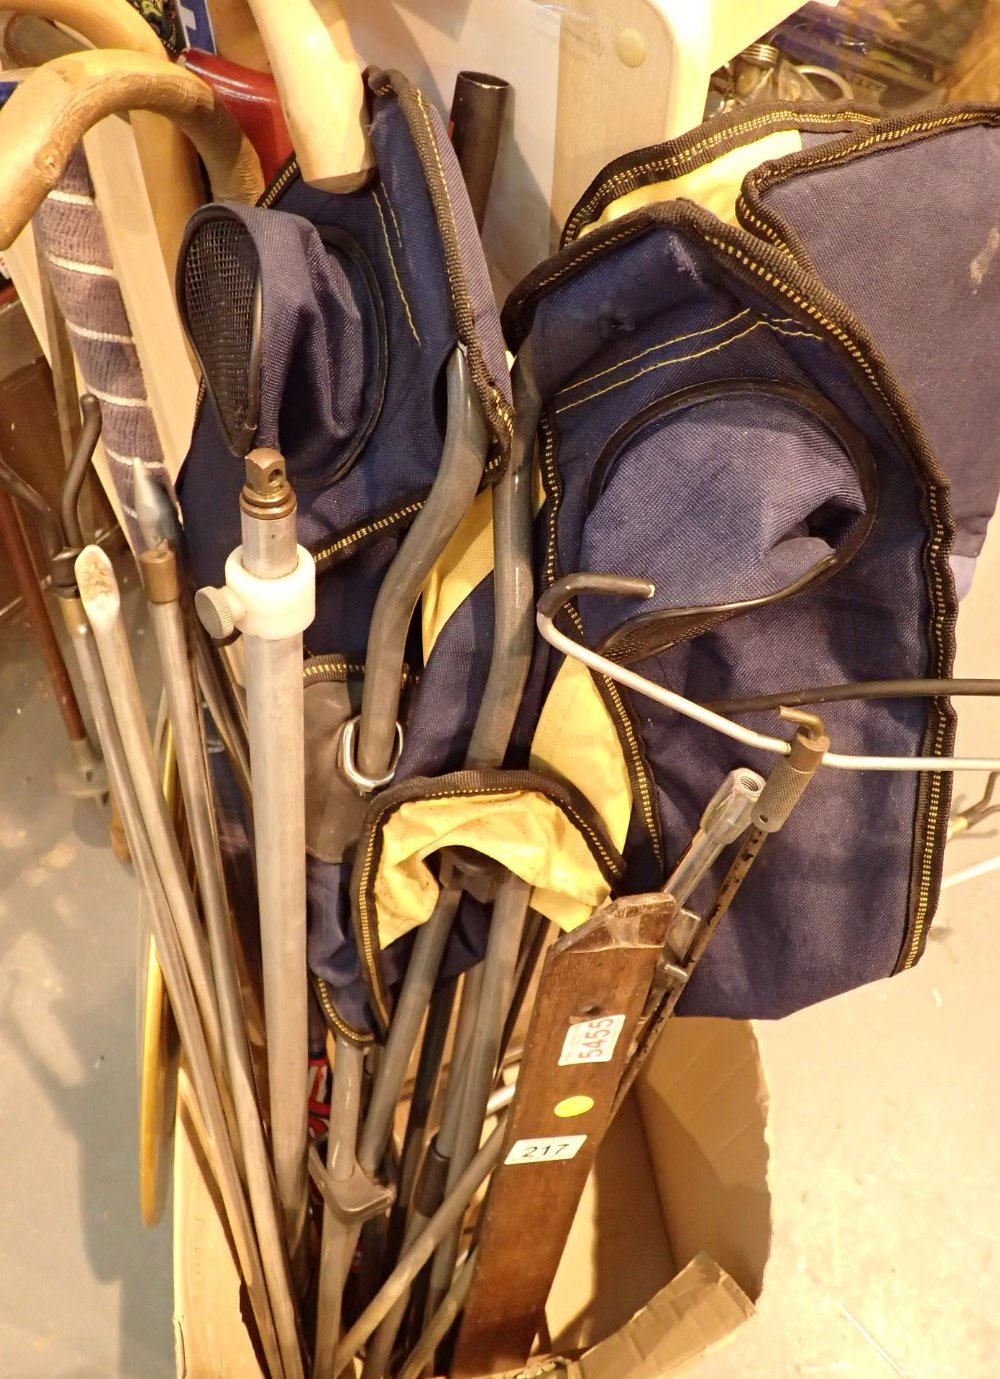 Lot 217 - Collection of sporting equipment includi